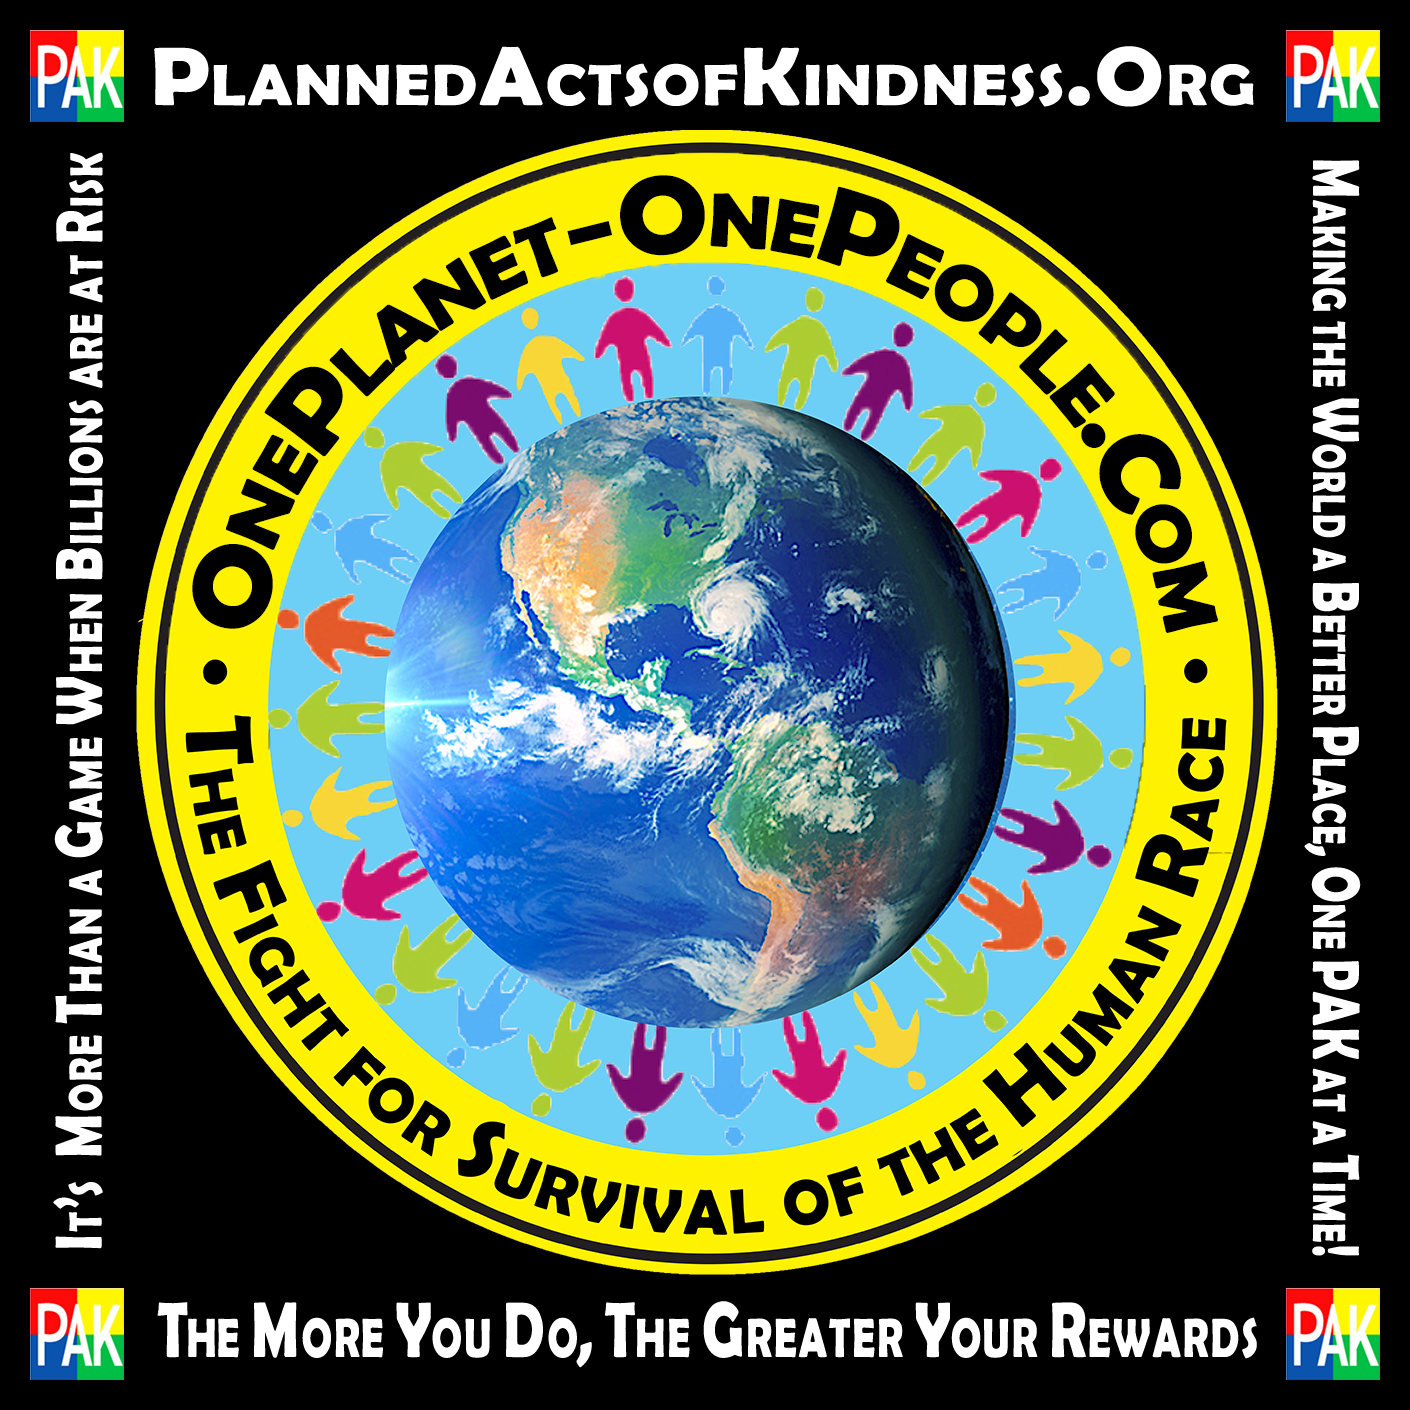 http://oneplanet-onepeople.com/